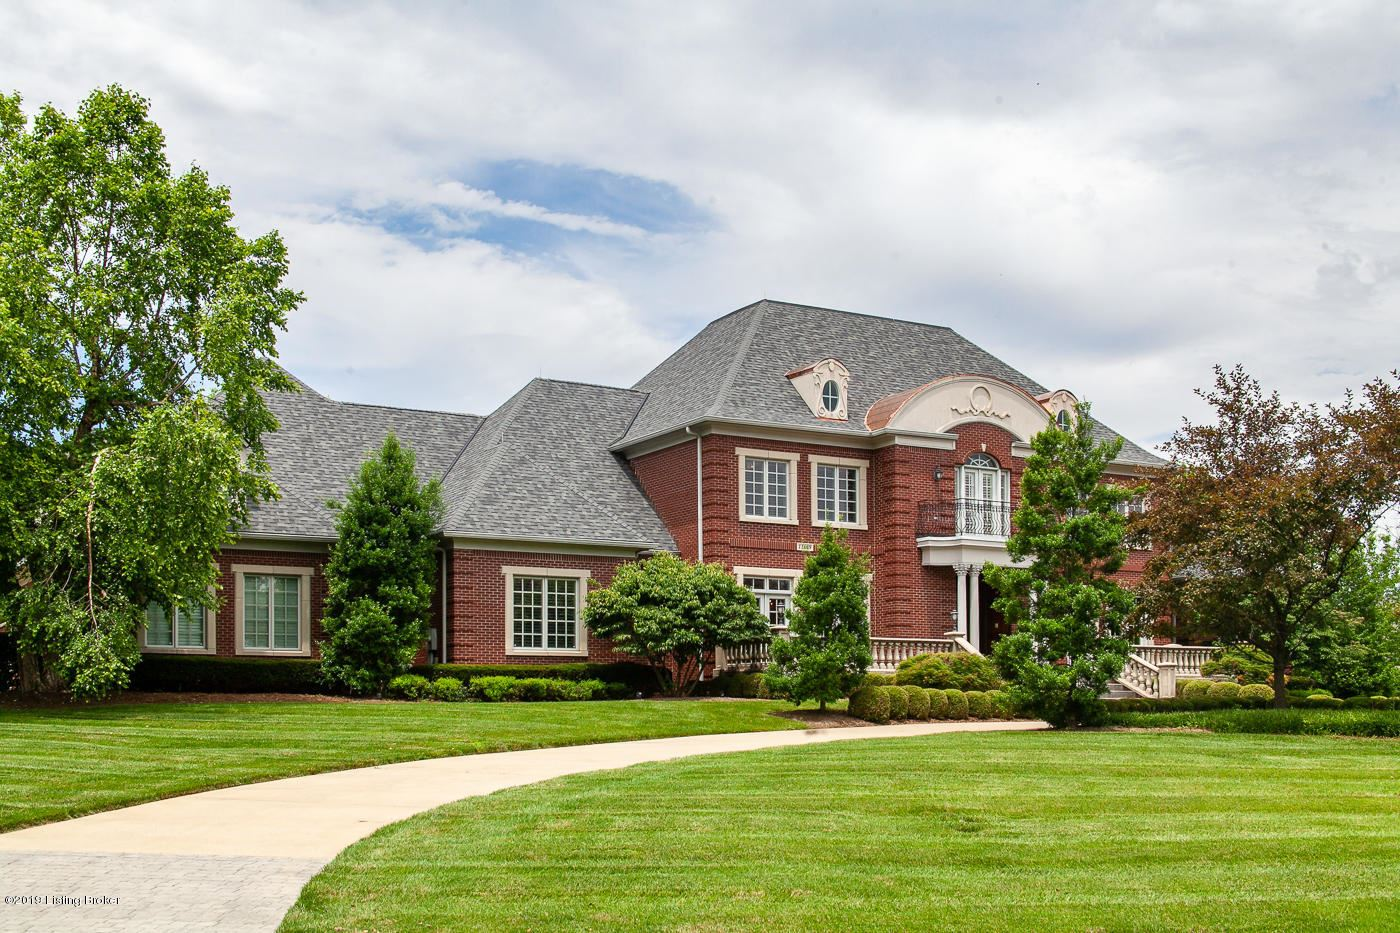 Property Image Of 11809 Lakestone Way In Prospect, Ky